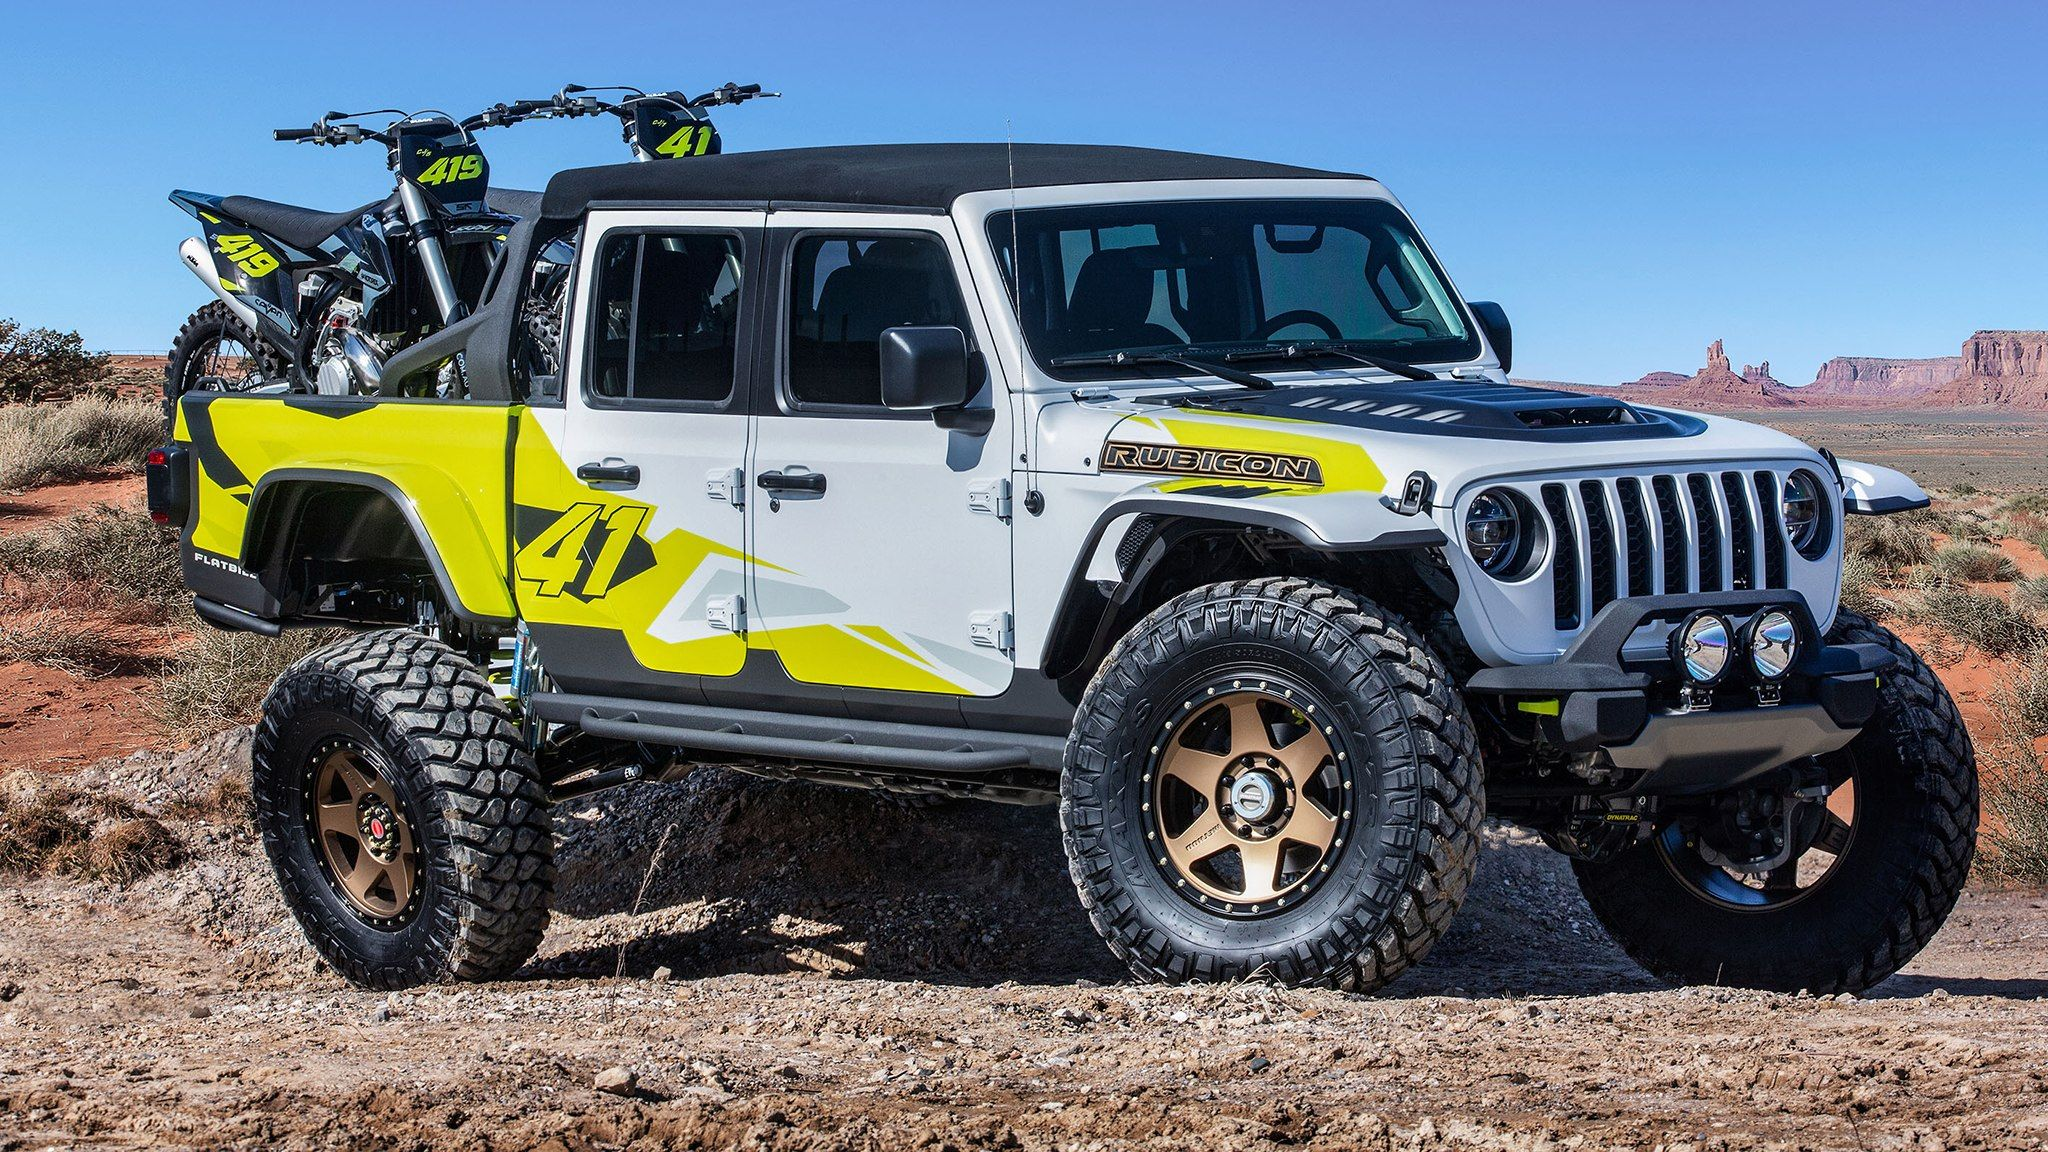 Jeep S 2019 Easter Safari Builds All Trucks And All Awesome